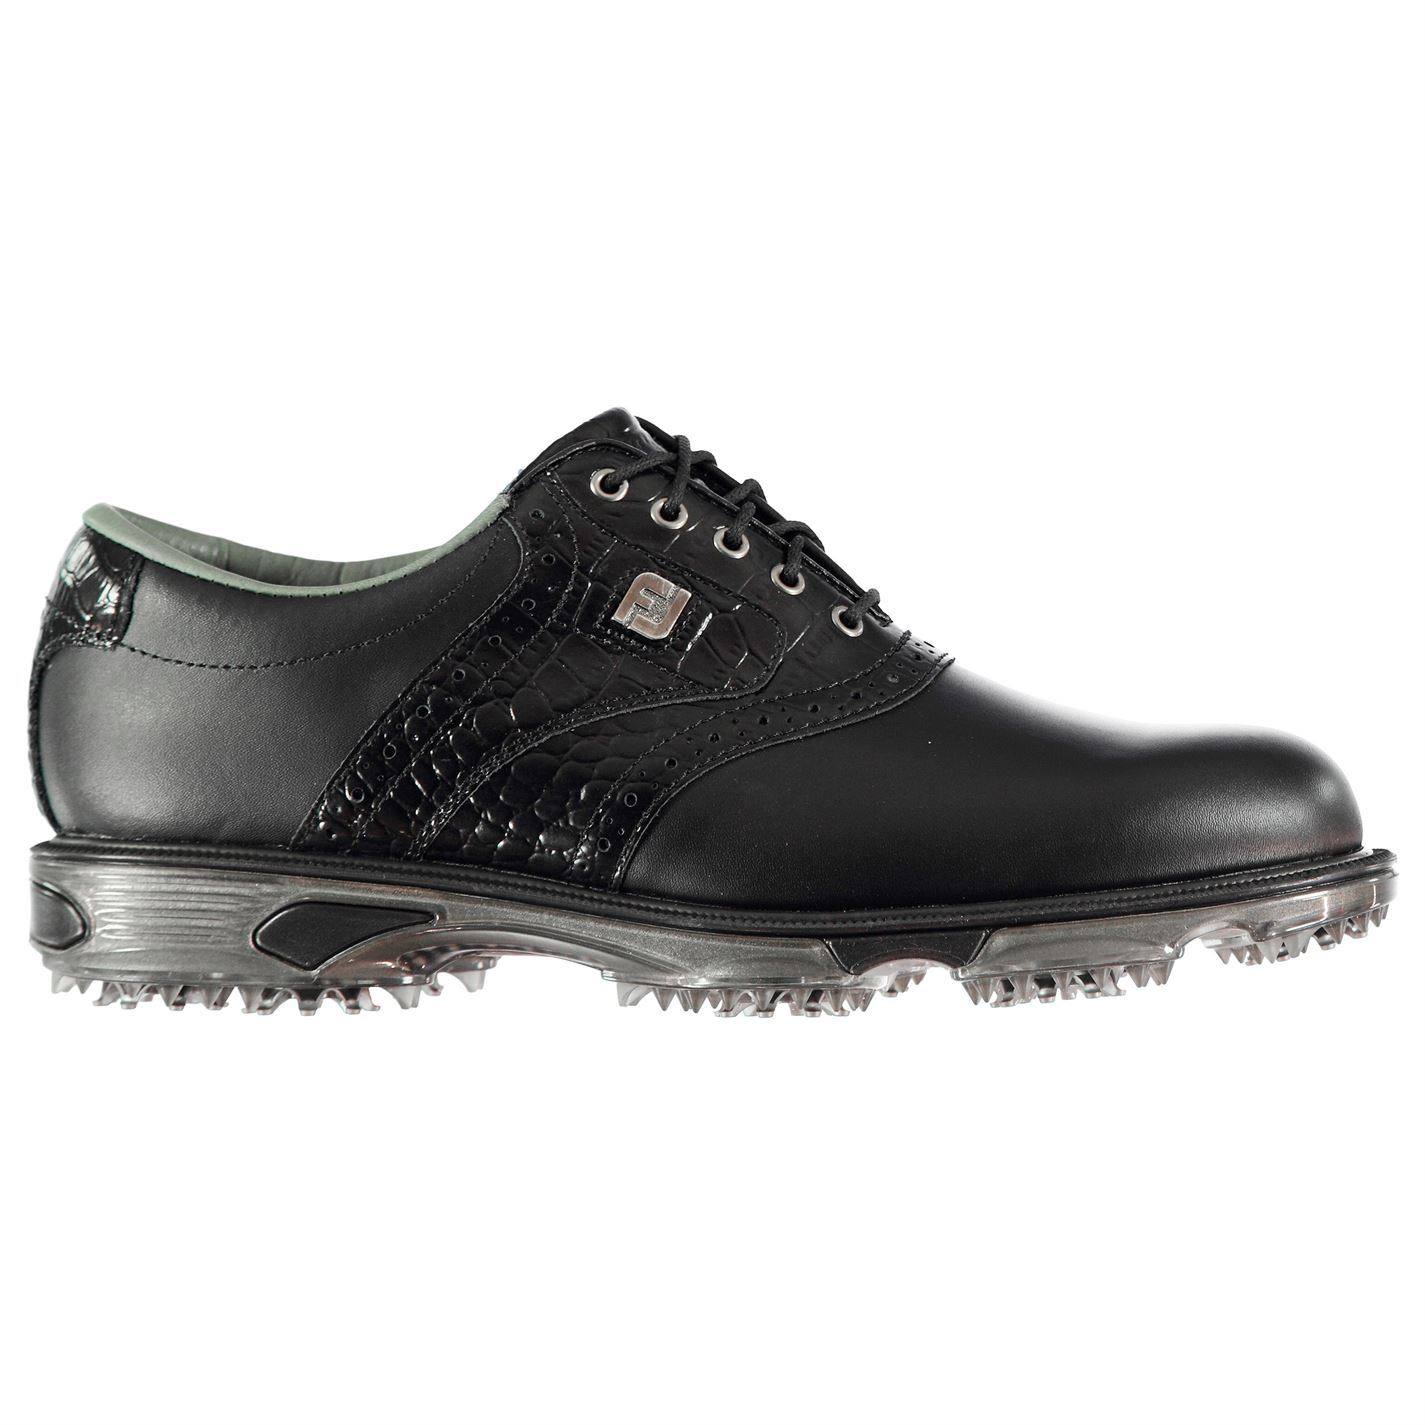 Footjoy-DryJoys-Tour-Golf-Shoes-Mens-Spikes-Footwear thumbnail 10